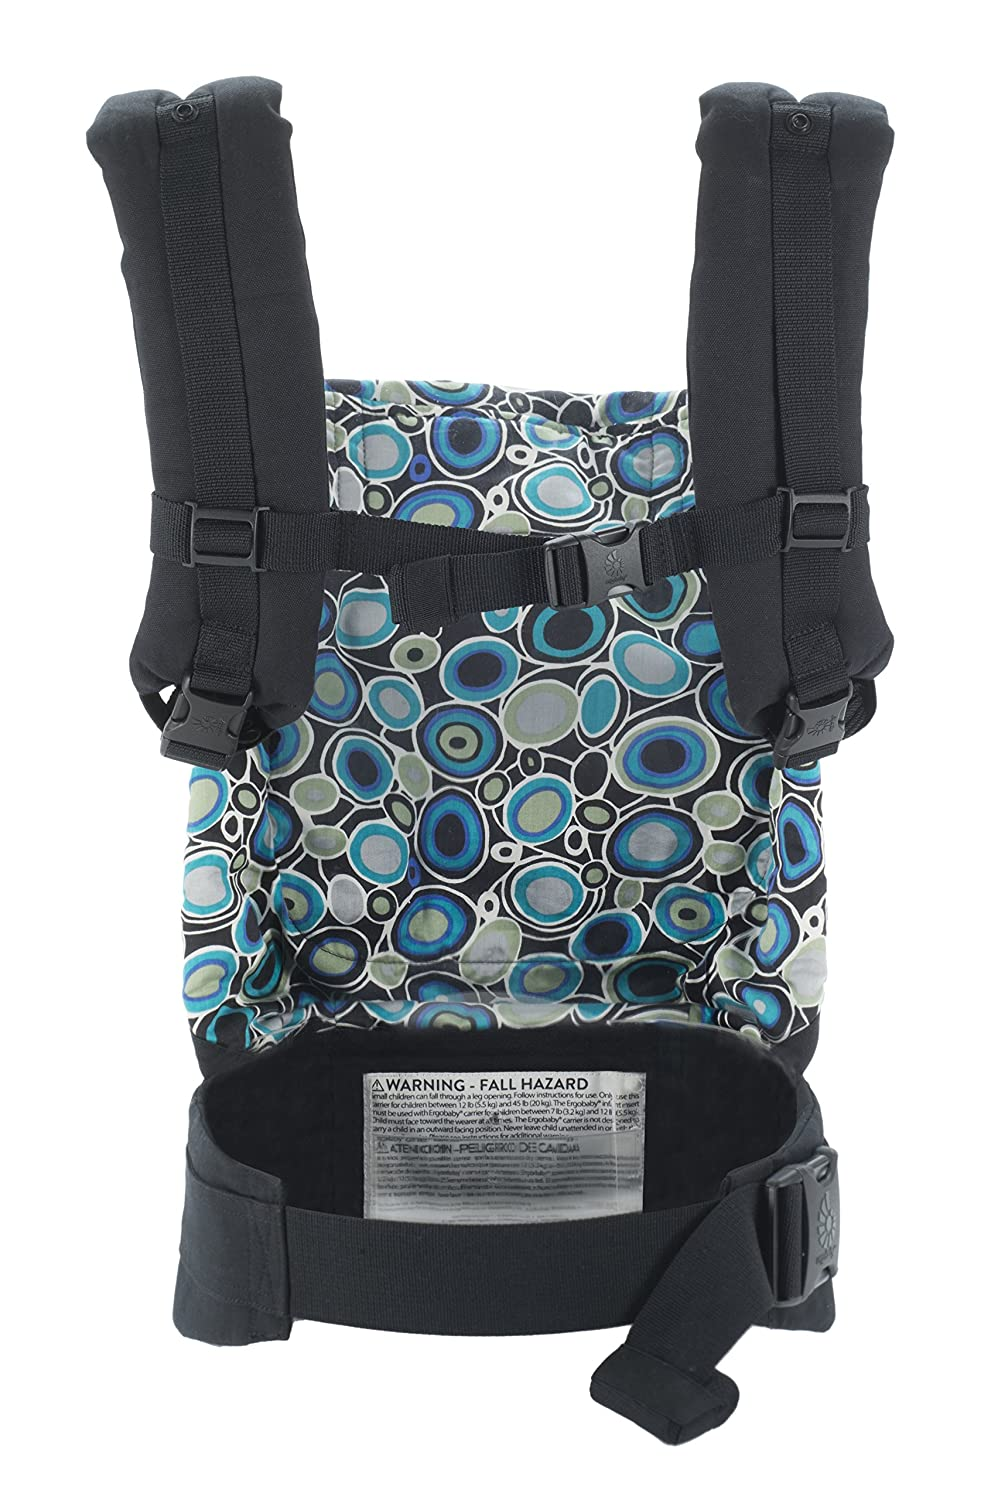 The Ergo Baby Carrier Instructions